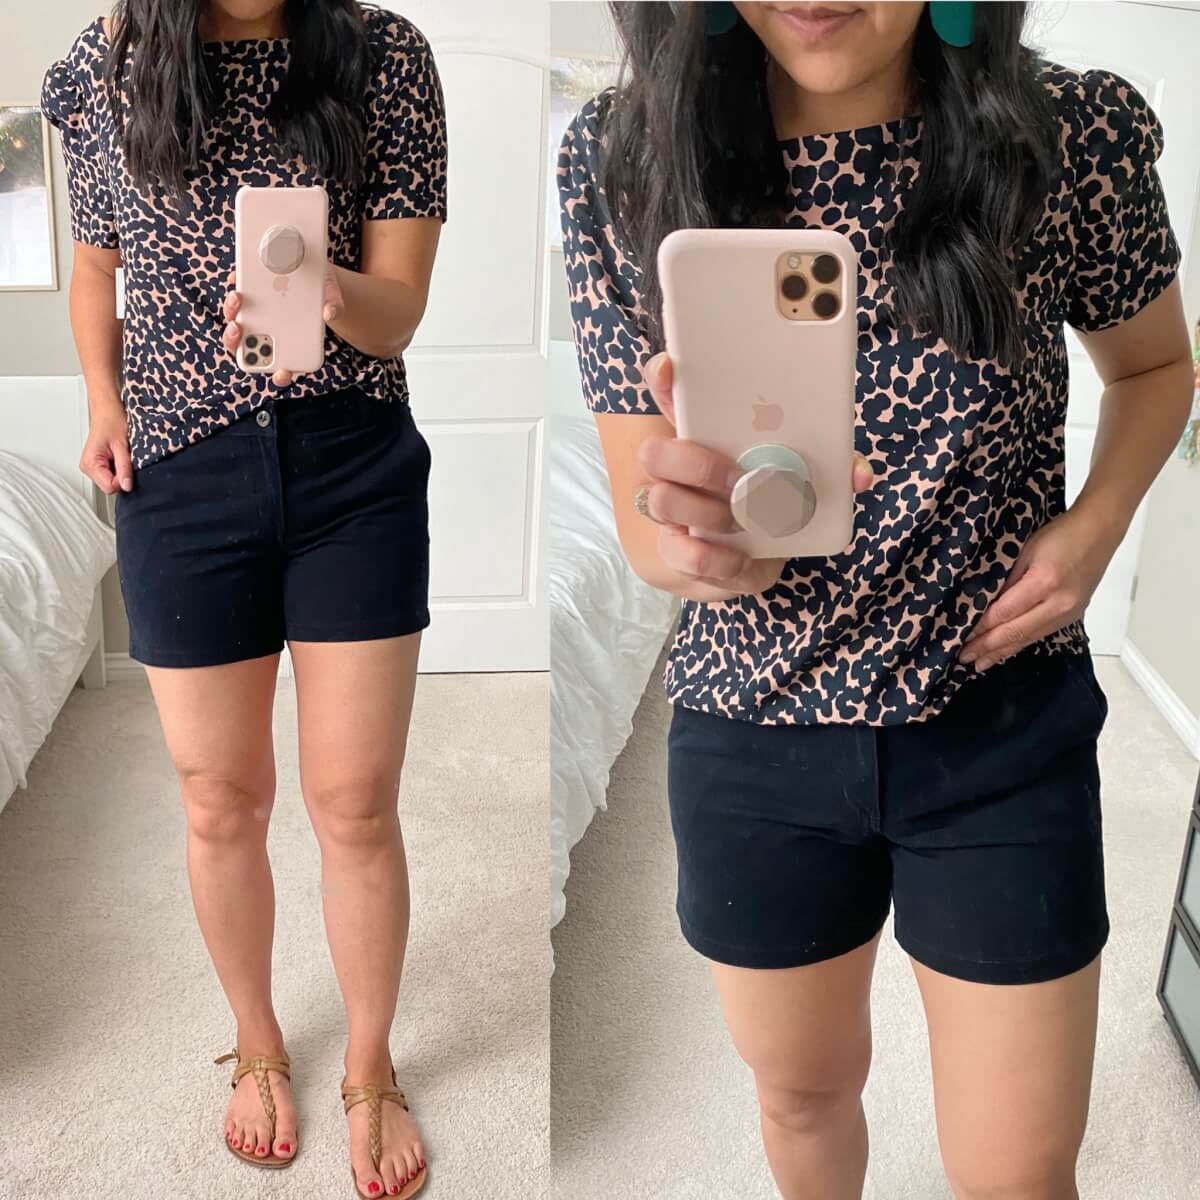 Nicer Casual Outfit: Lark & Ro square neck navy and camel spotted blouse + black shorts + nude t-strap sandals + teal earrings close up